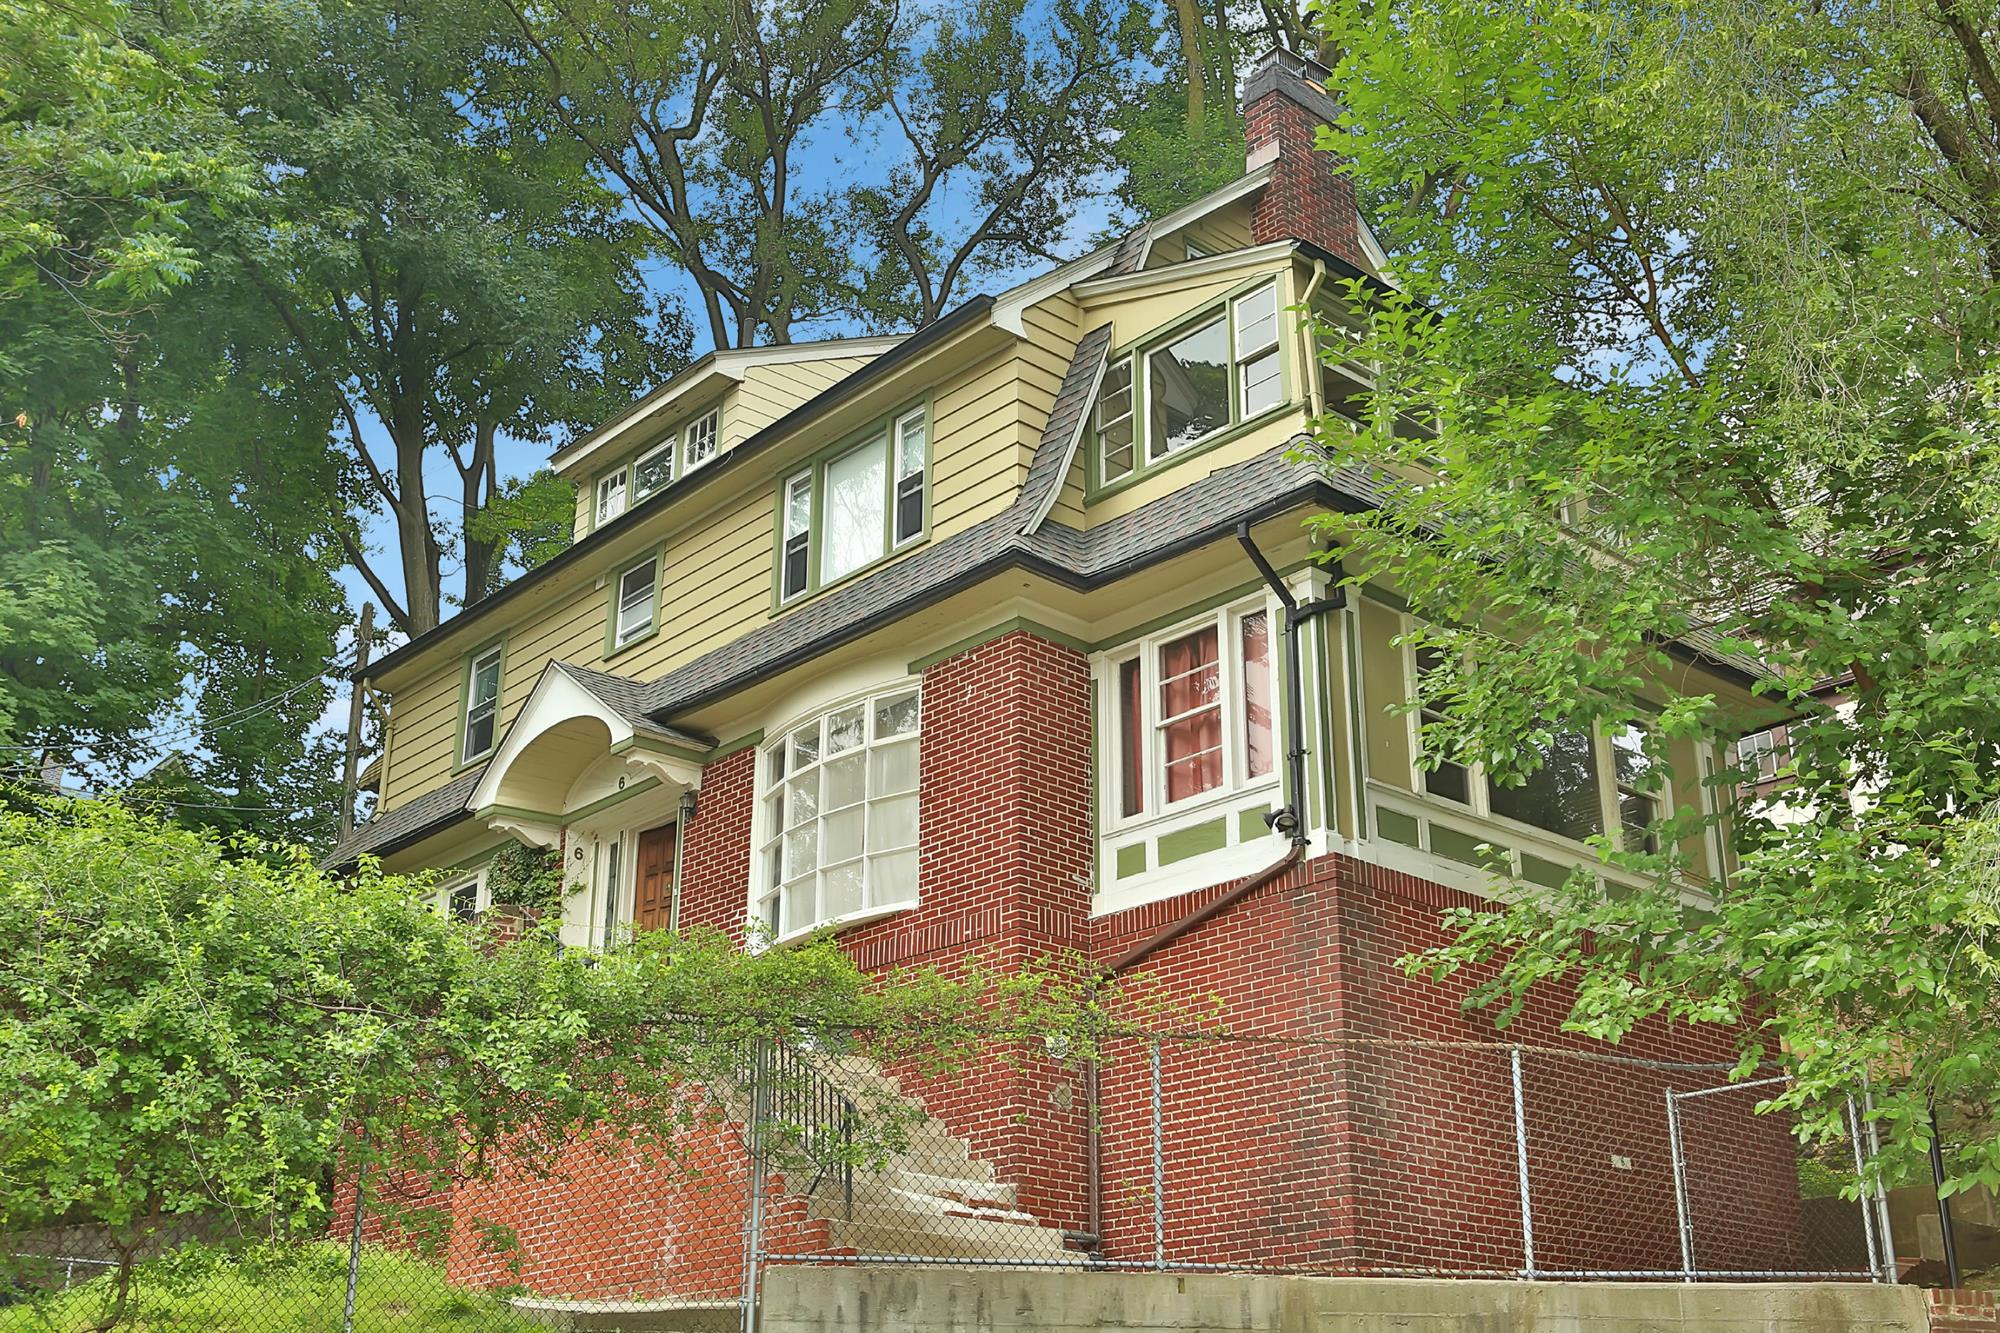 VAN CORTLANDT CREST: 5-Bd. 1920s Dutch Colonial-Style House on Berkeley Avenue